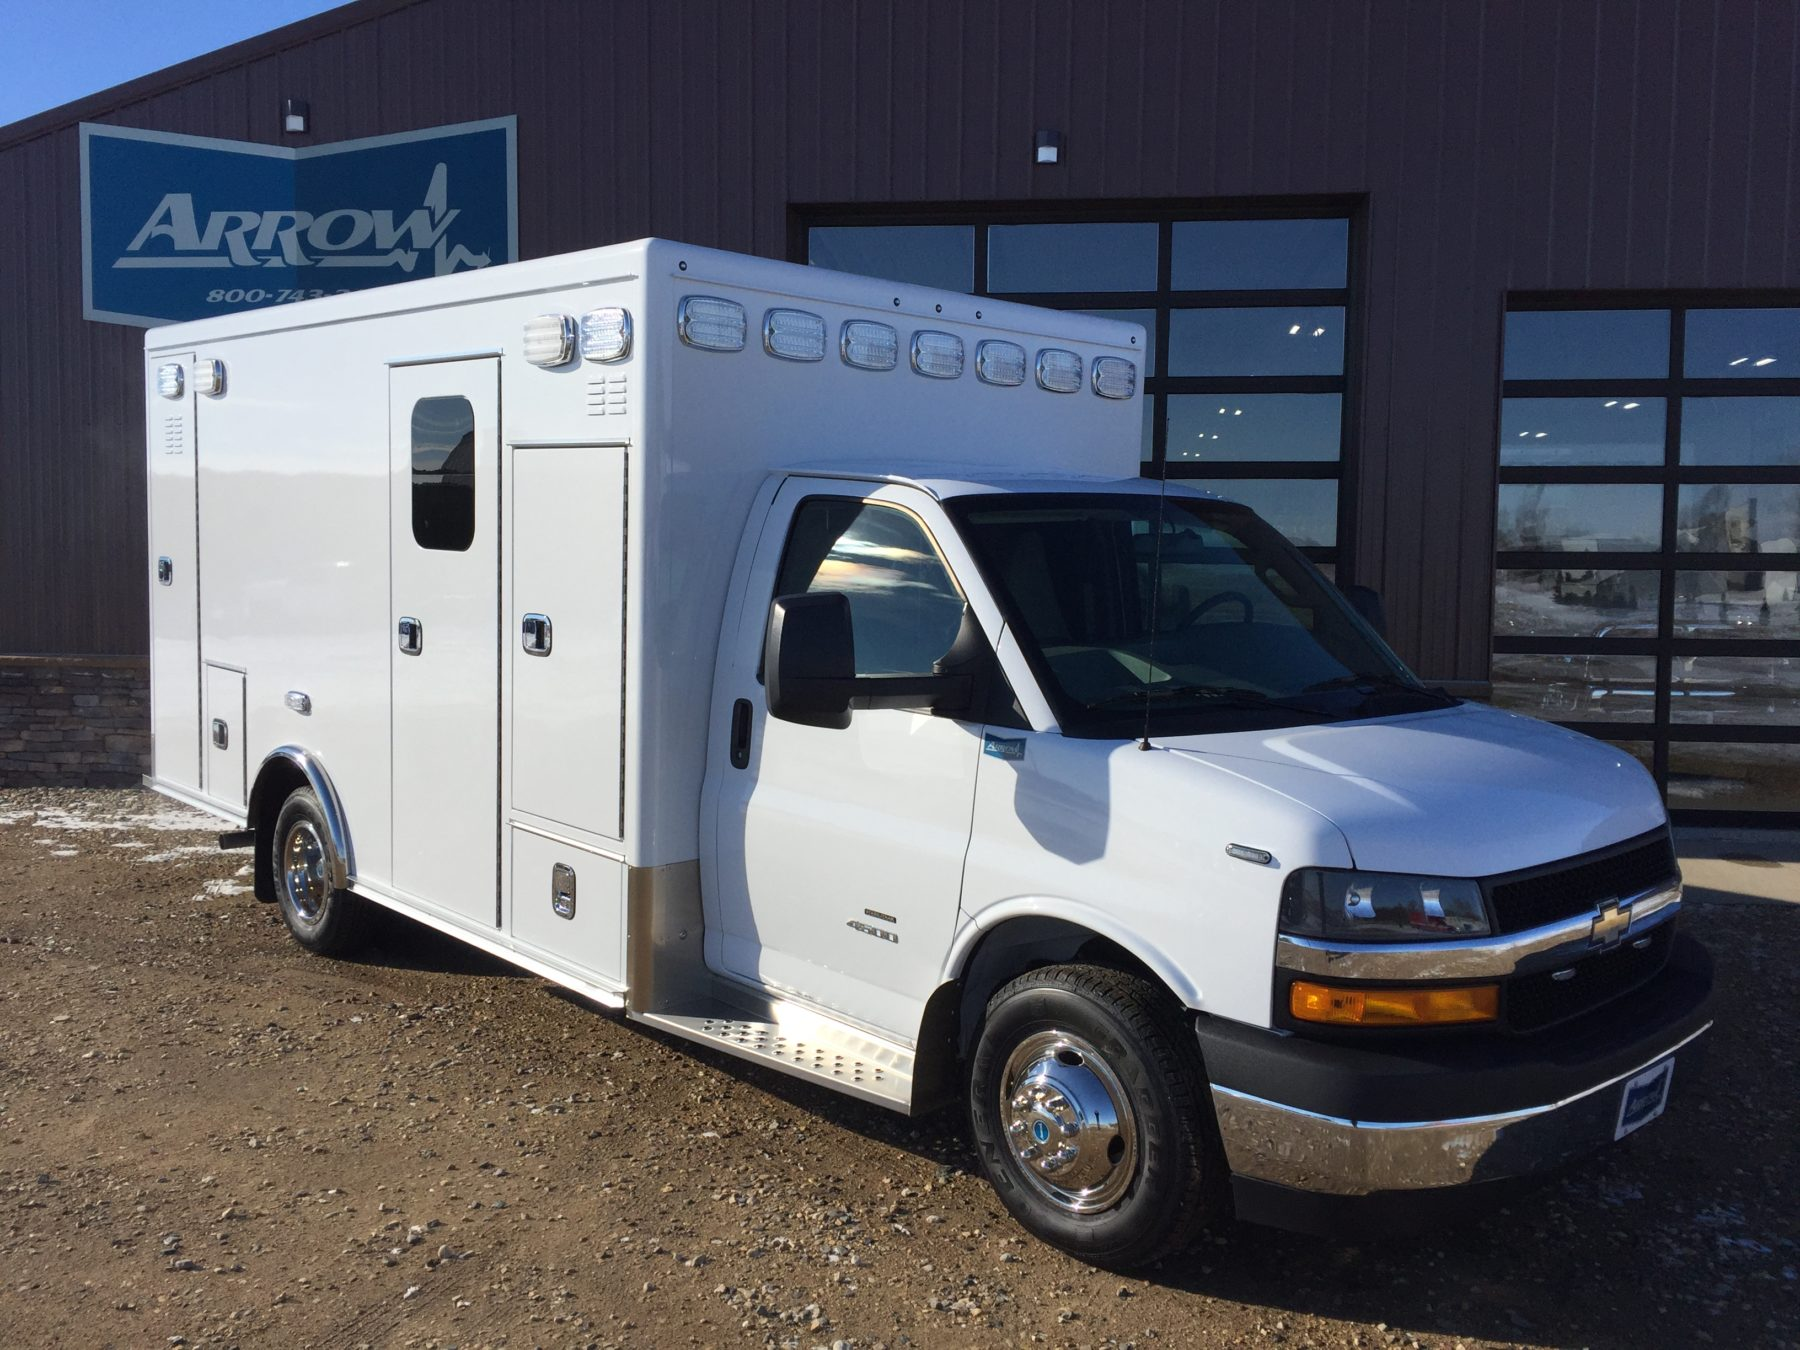 2018 Chevrolet G4500 Type 3 Ambulance For Sale – Picture 3